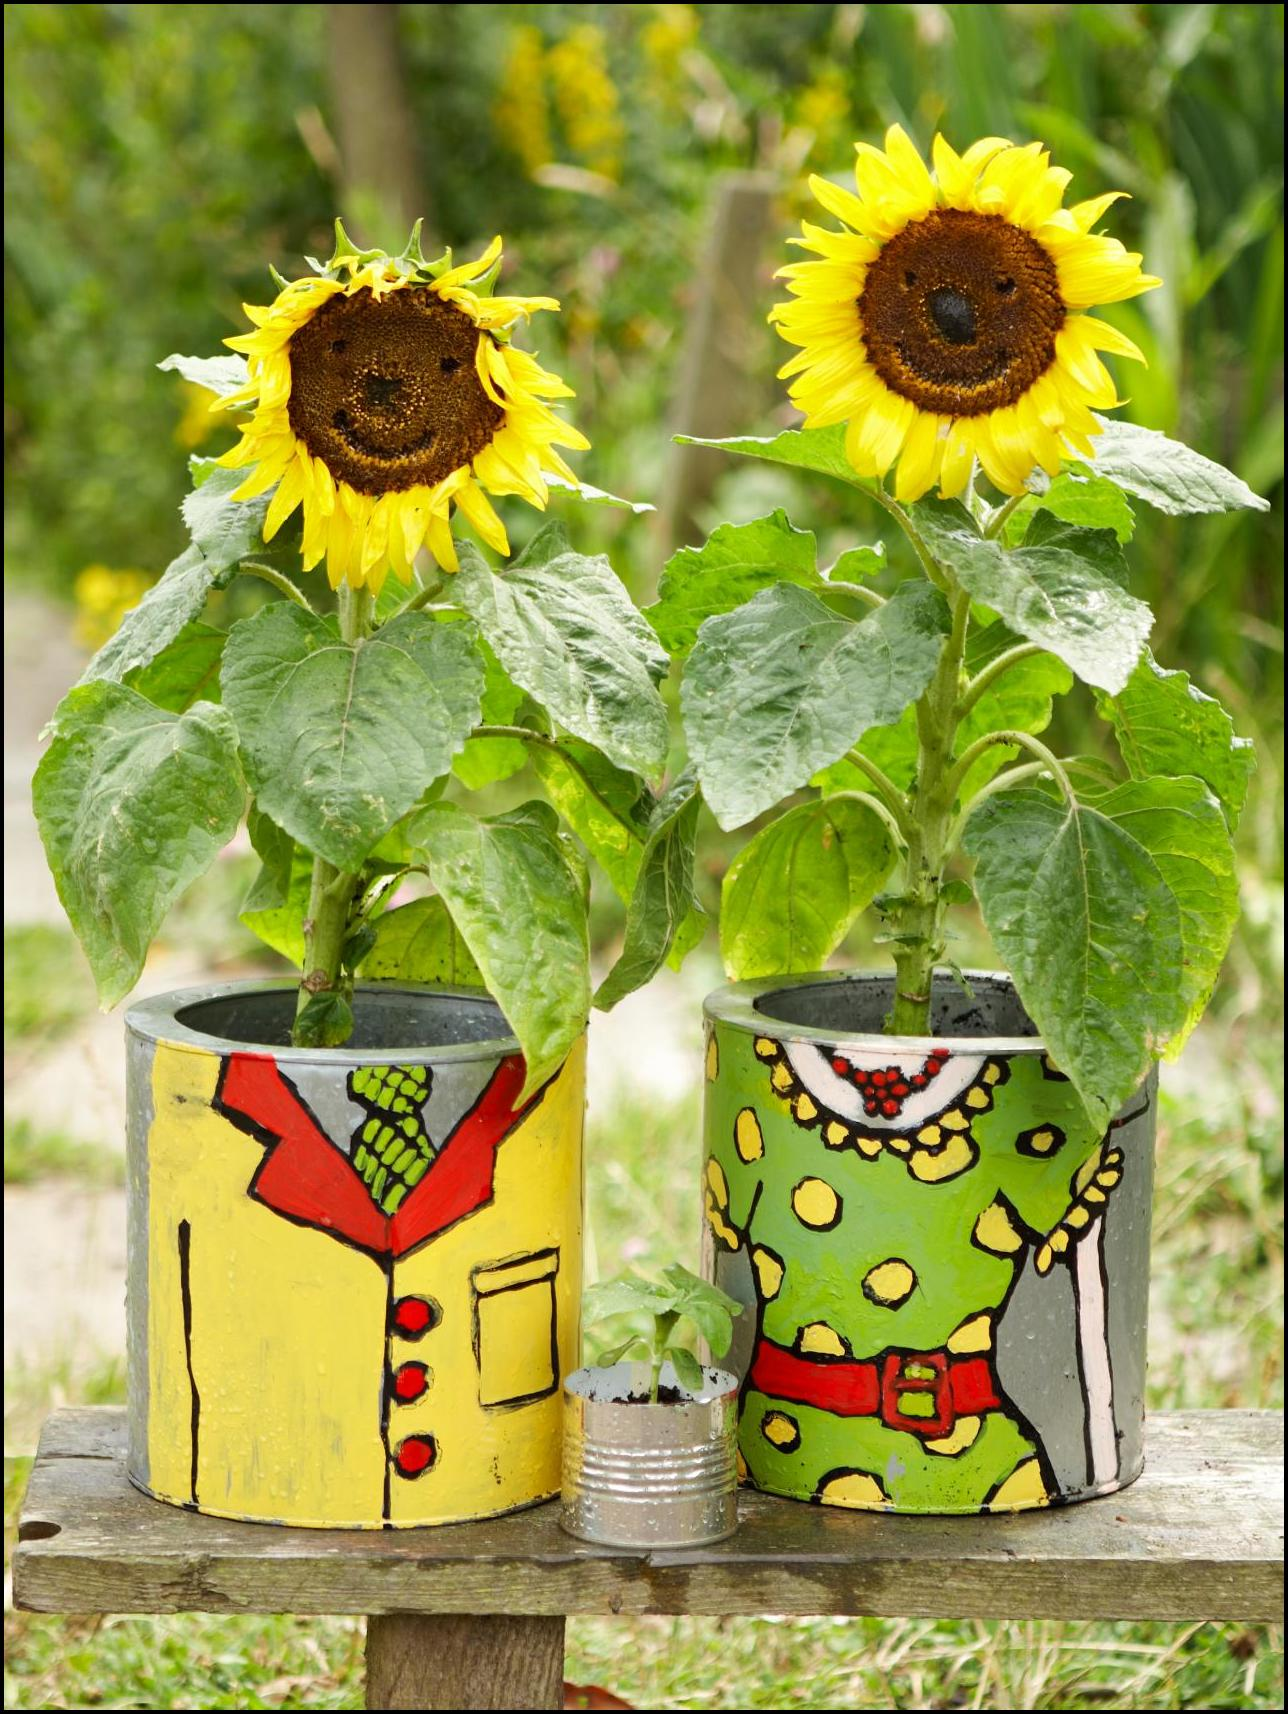 Growing Sunflowers In Pots